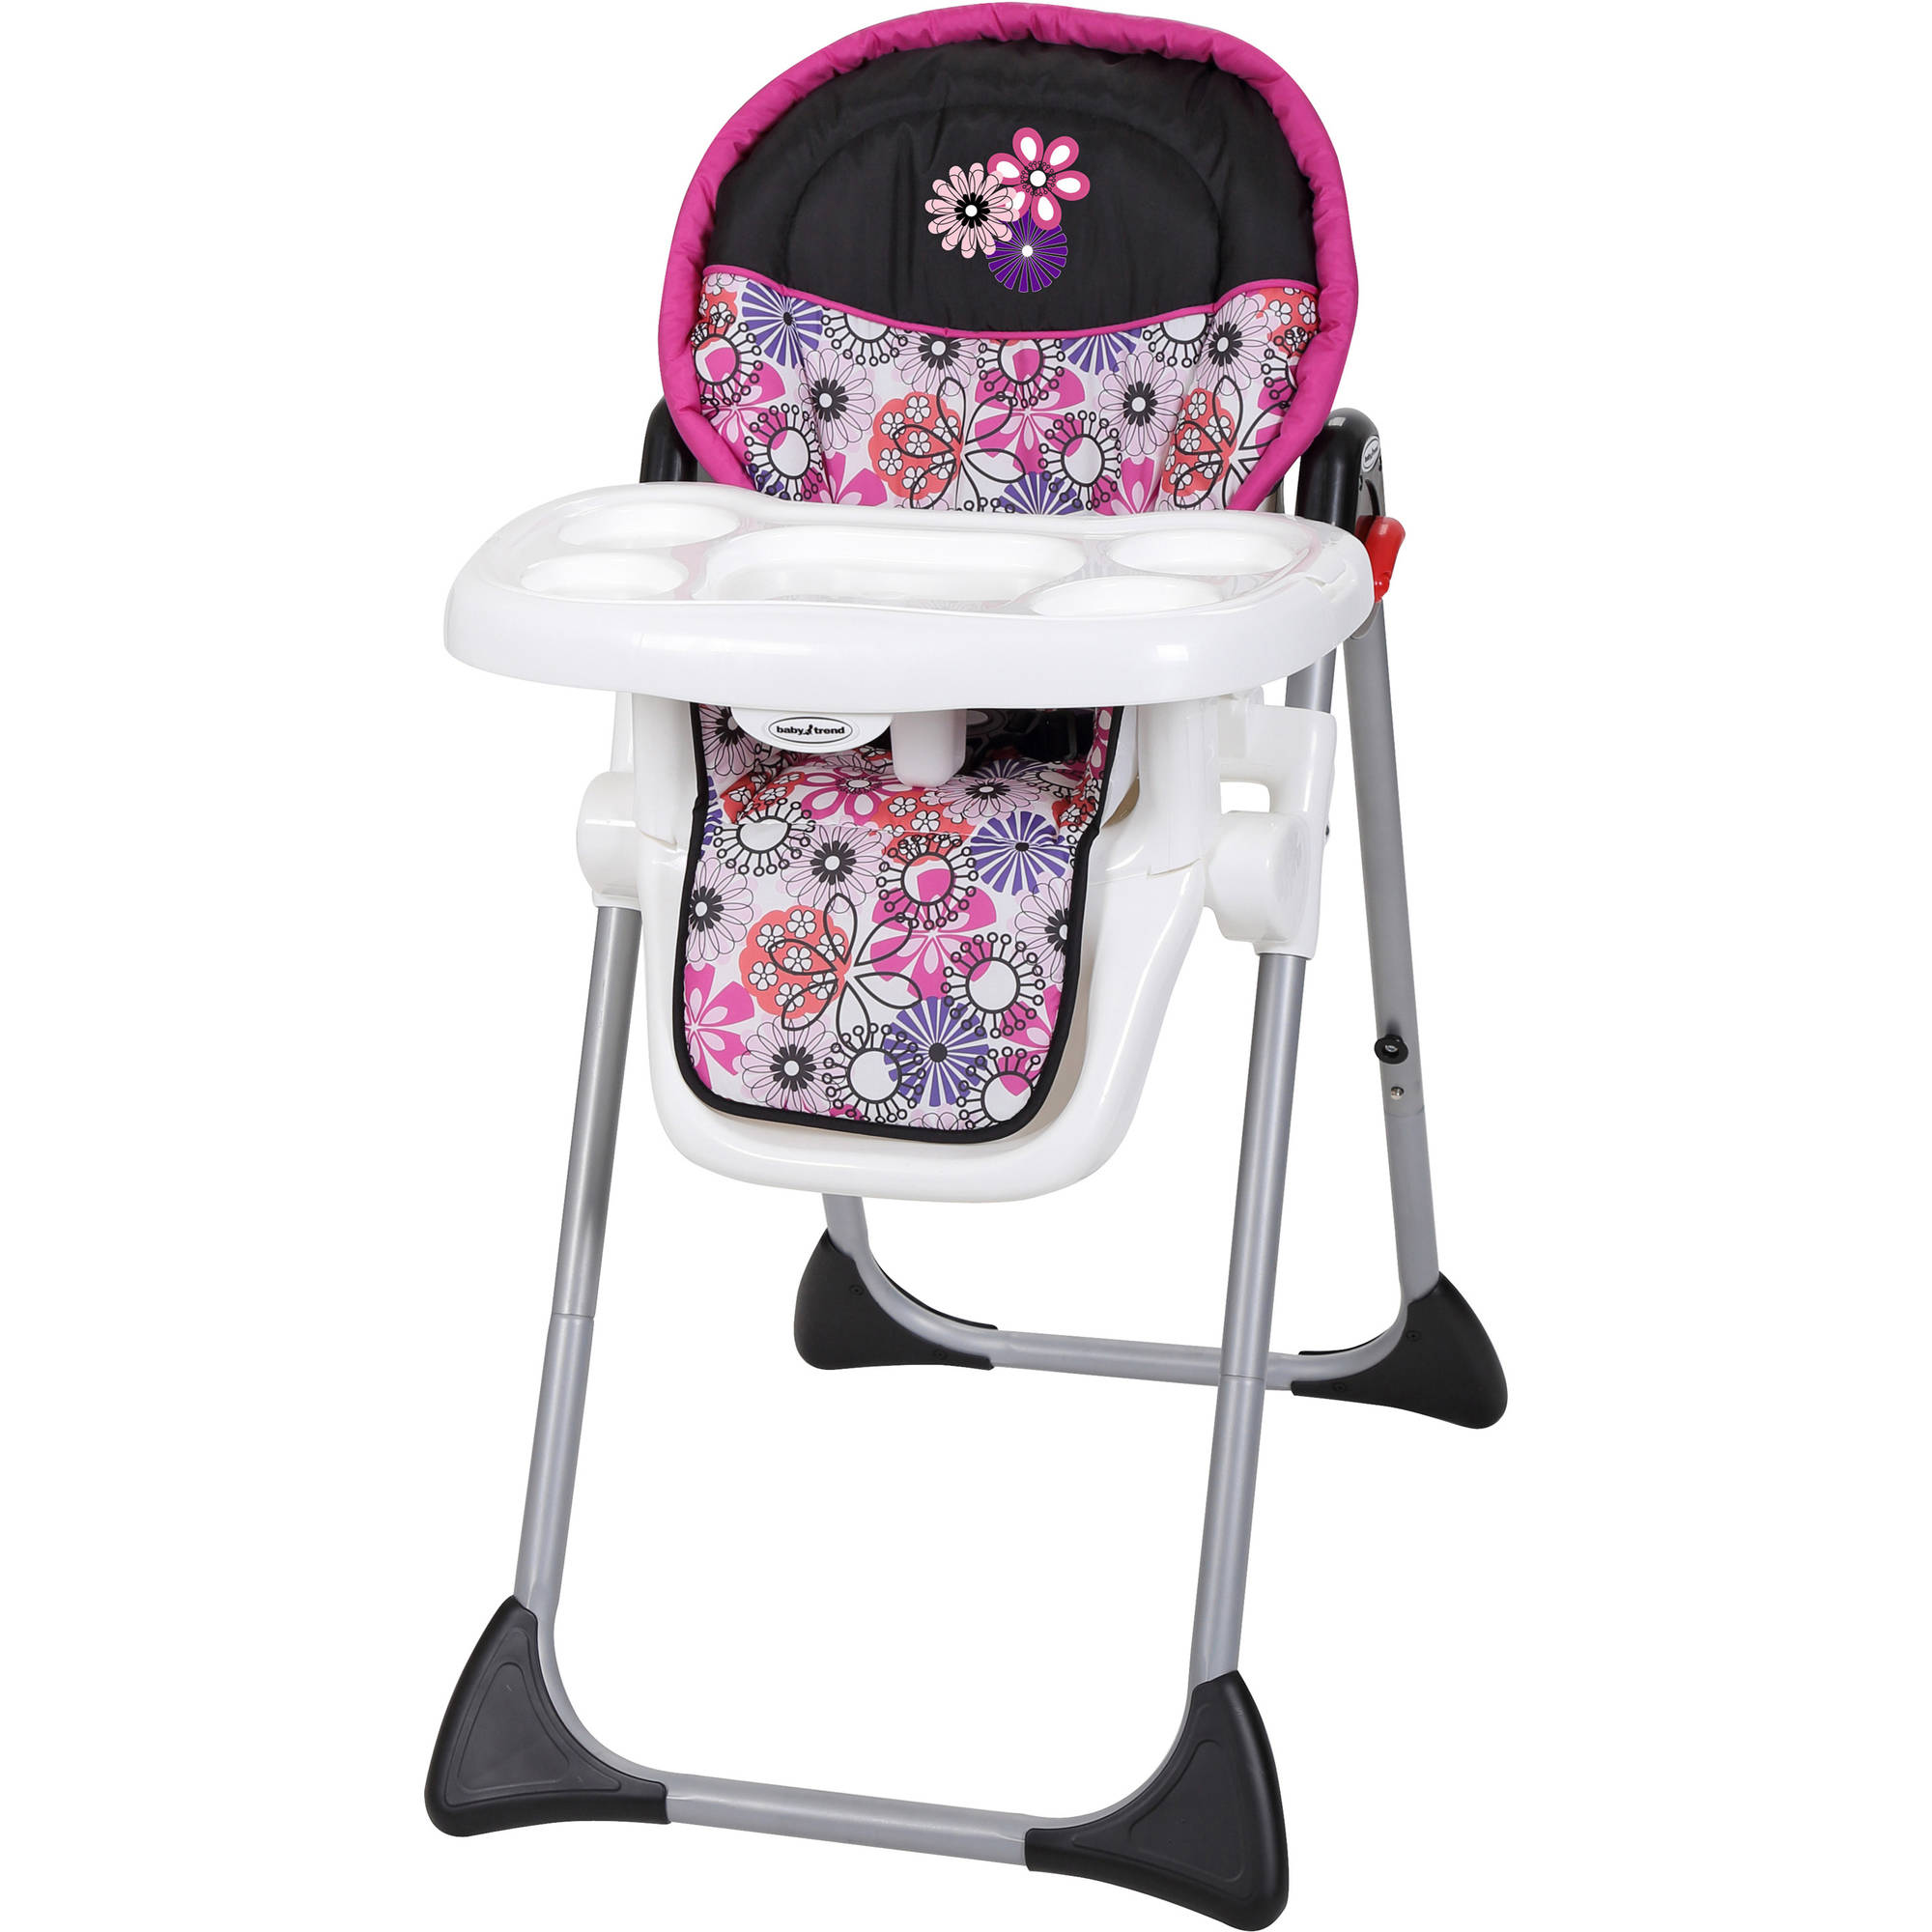 Baby Chair Baby Trend Sit Right High Chair Portable Convertible Baby